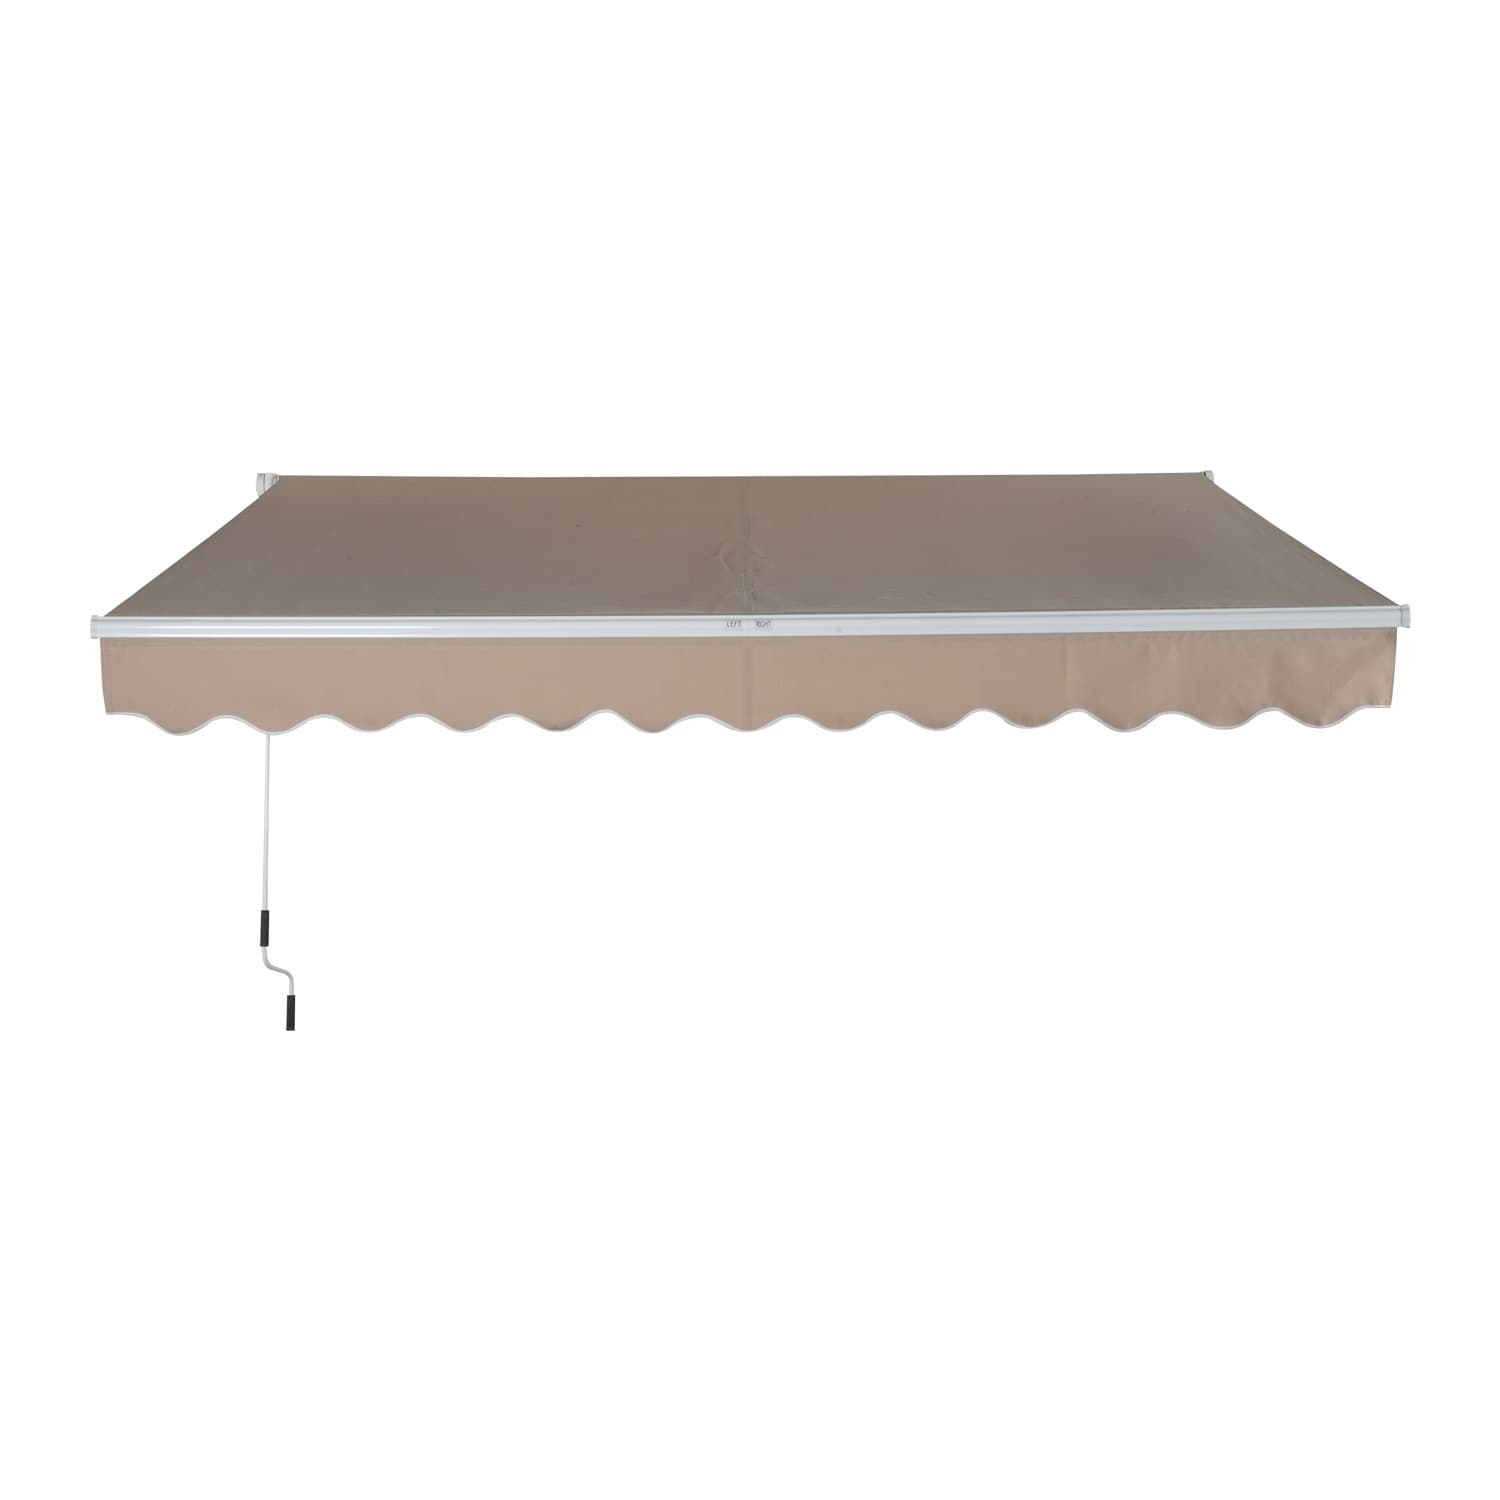 "Outsunny 116"" Manual Retractable Patio Sun Shade Awning, ..."